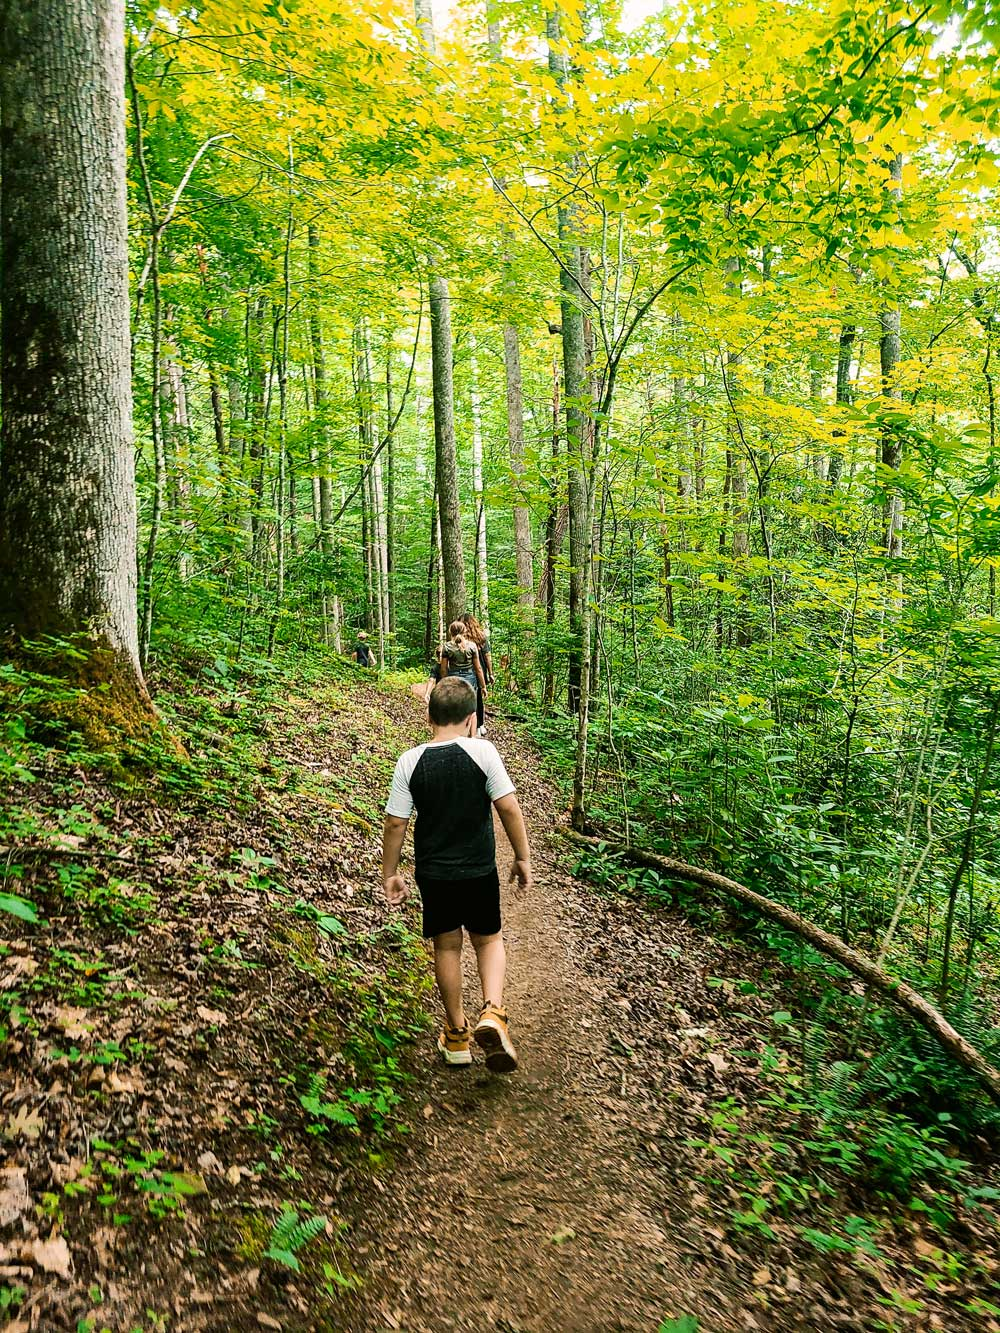 Best Things to Do in Bryson City NC with Kids   Things to do in Bryson City NC by popular Florida travel blog, Fresh Mommy Blog: image of a family hiking on a dirt trail.